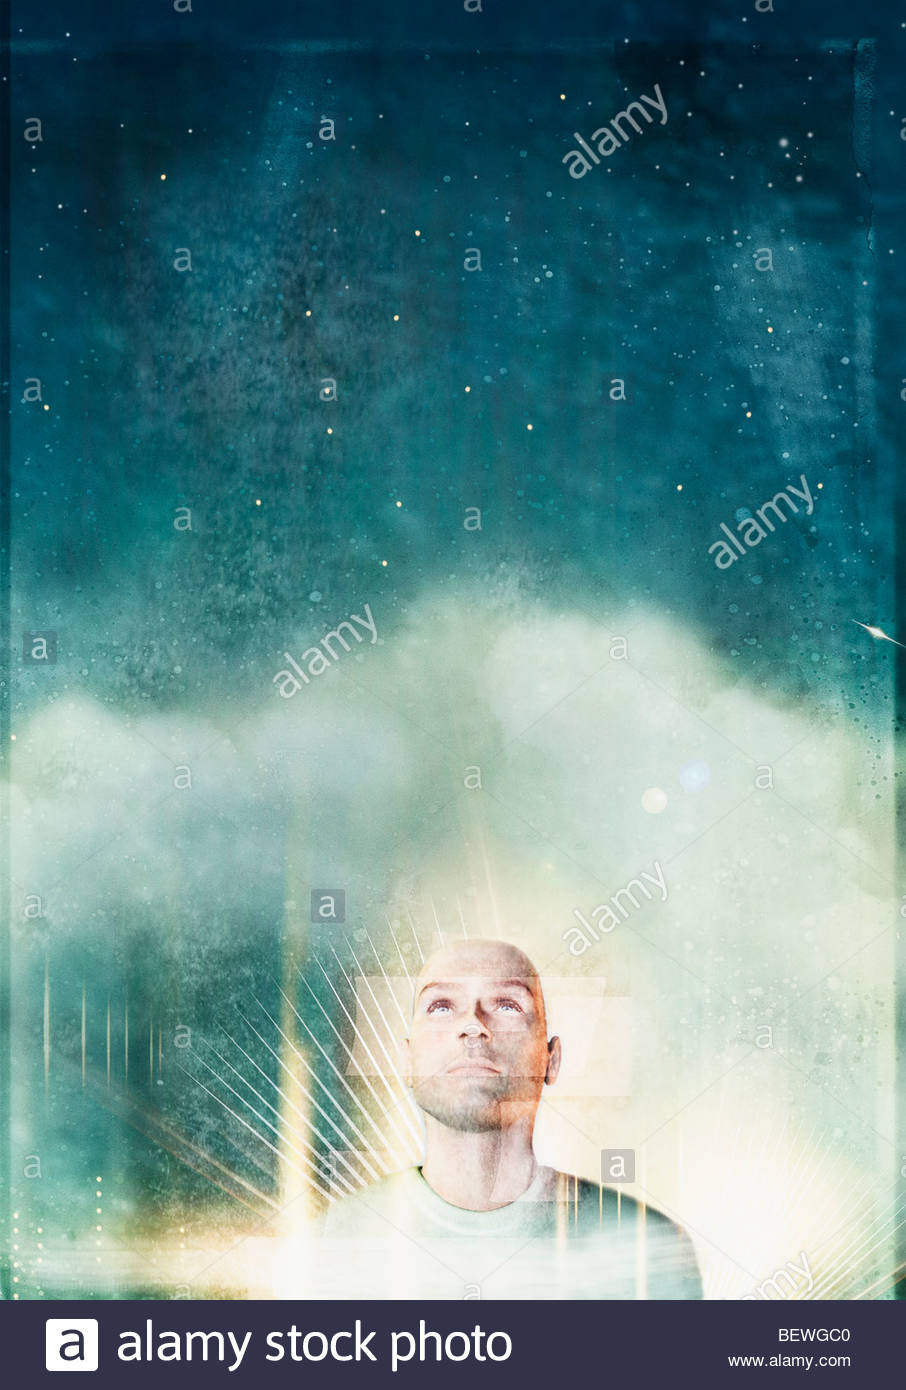 Man looking at night sky above - Stock Image